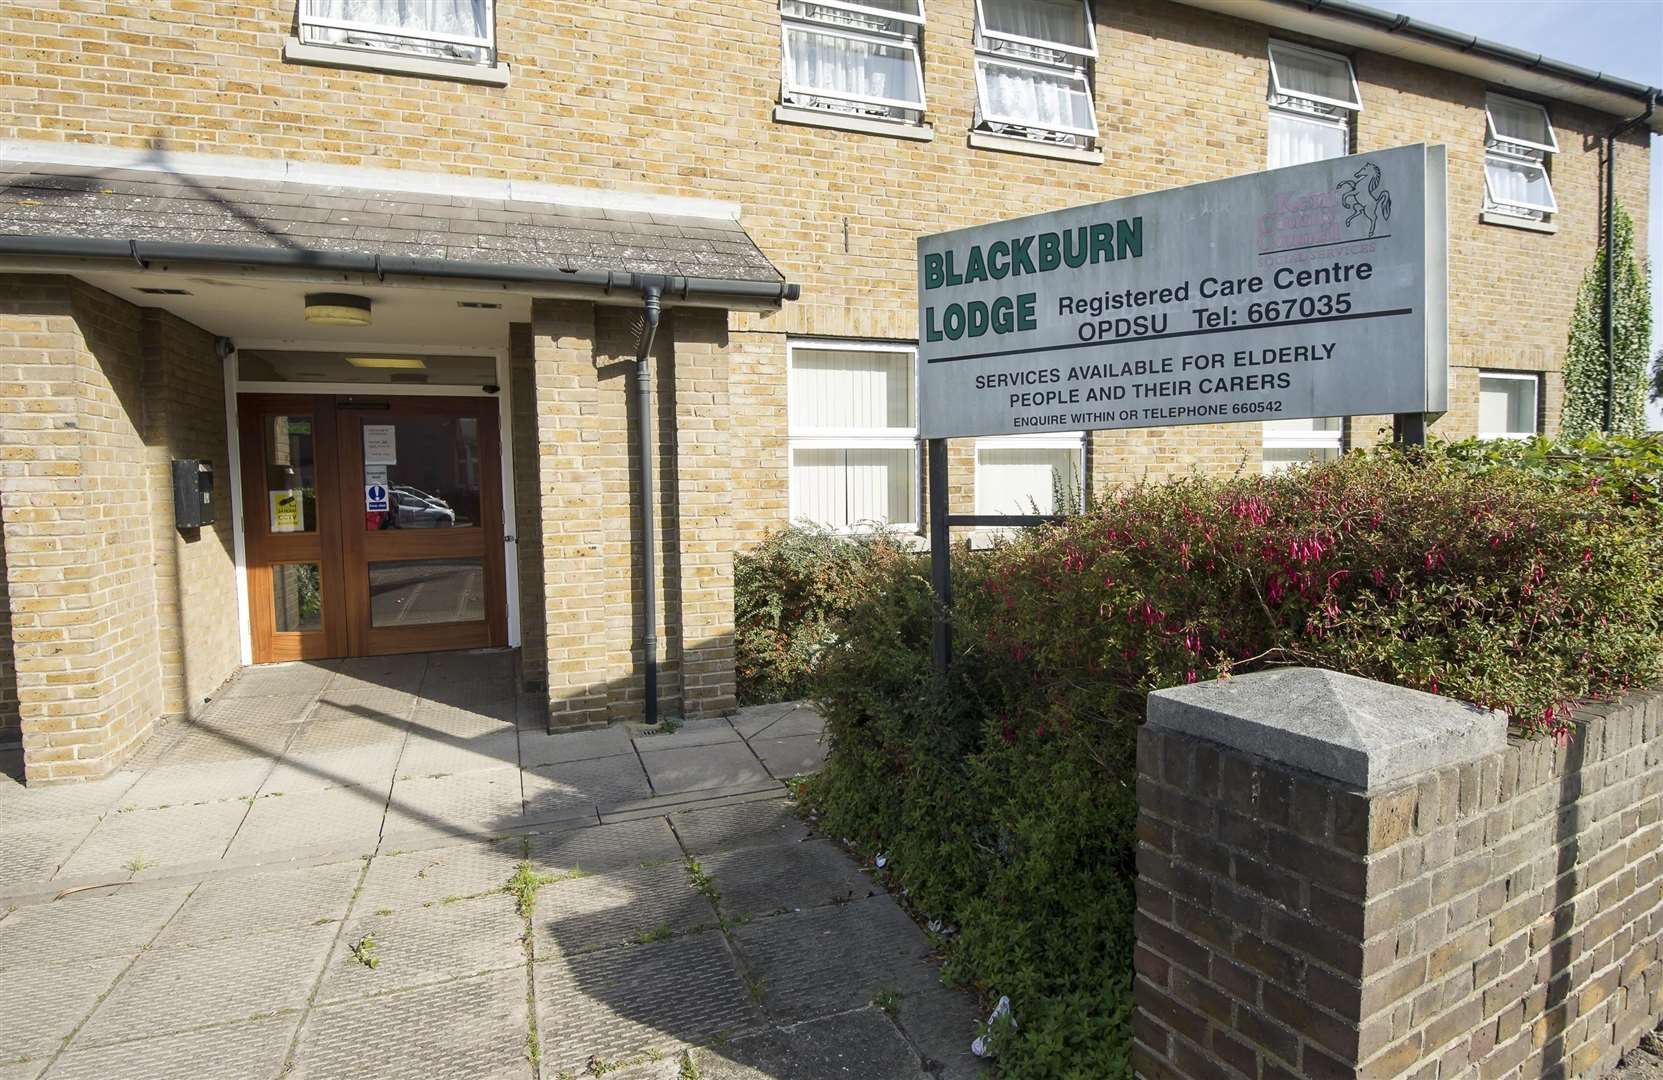 Blackburn Lodge in Broadway, Sheerness, has been threatened with closure